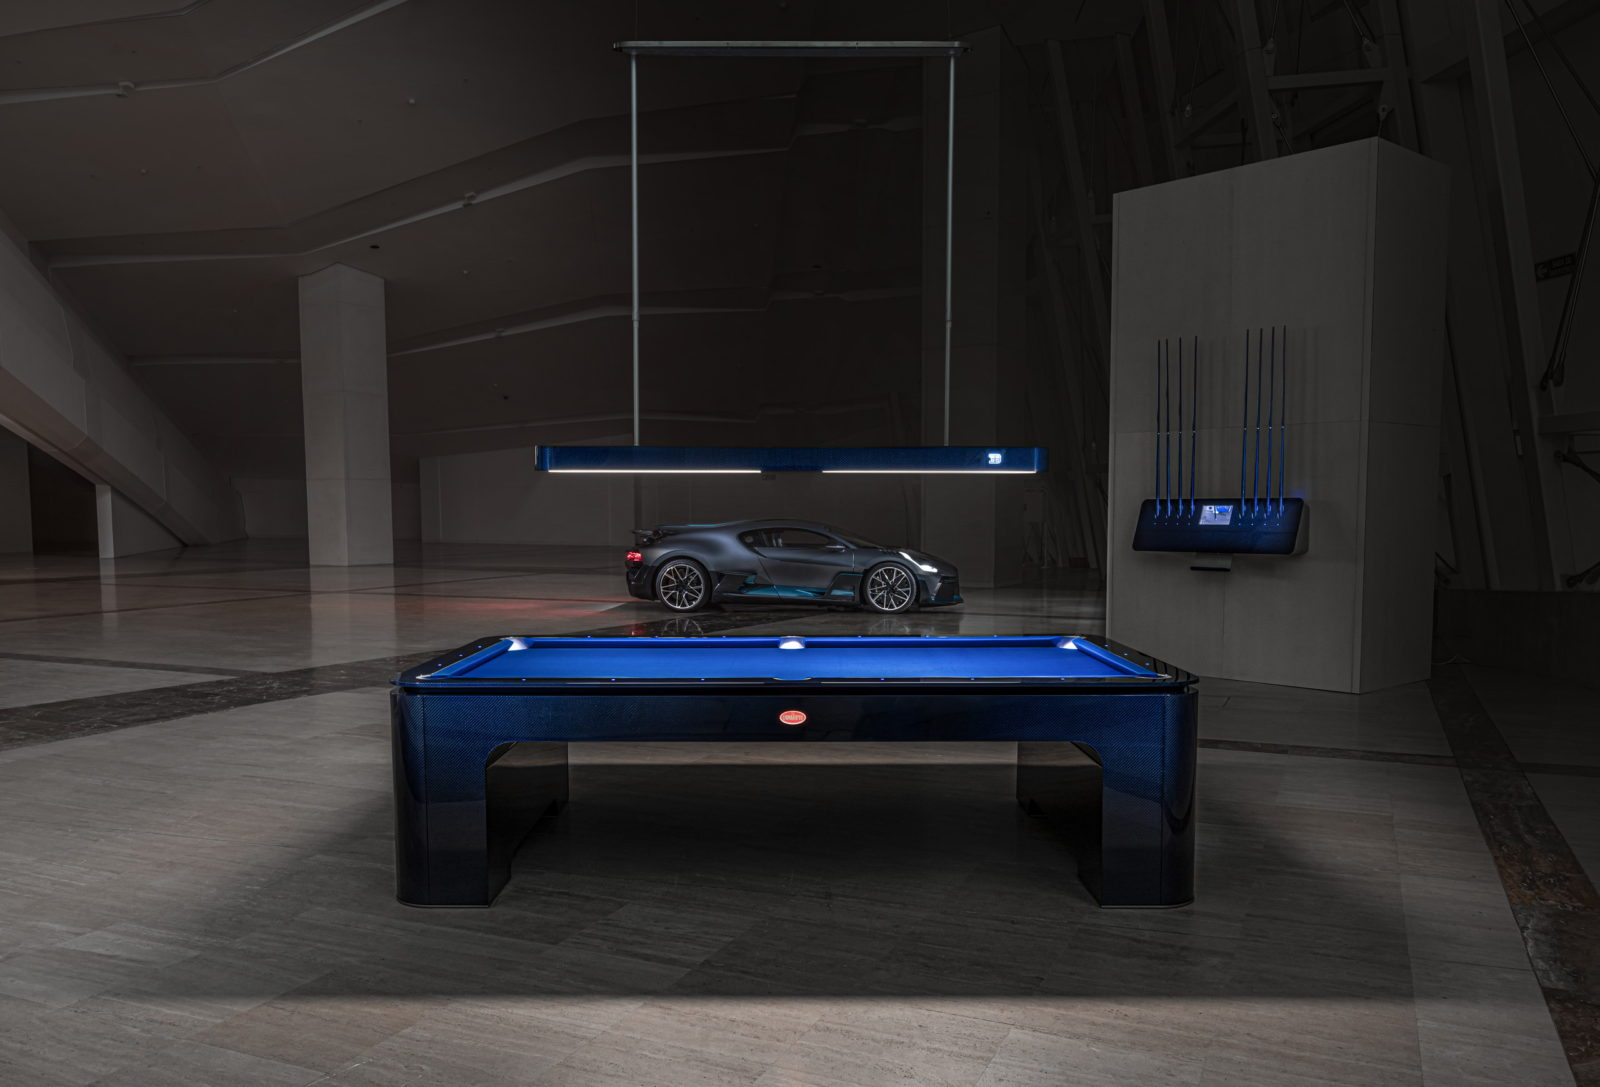 this-is-the-first-bugatti-pool-table,-and-it-costs-new-lamborghini-huracan-money